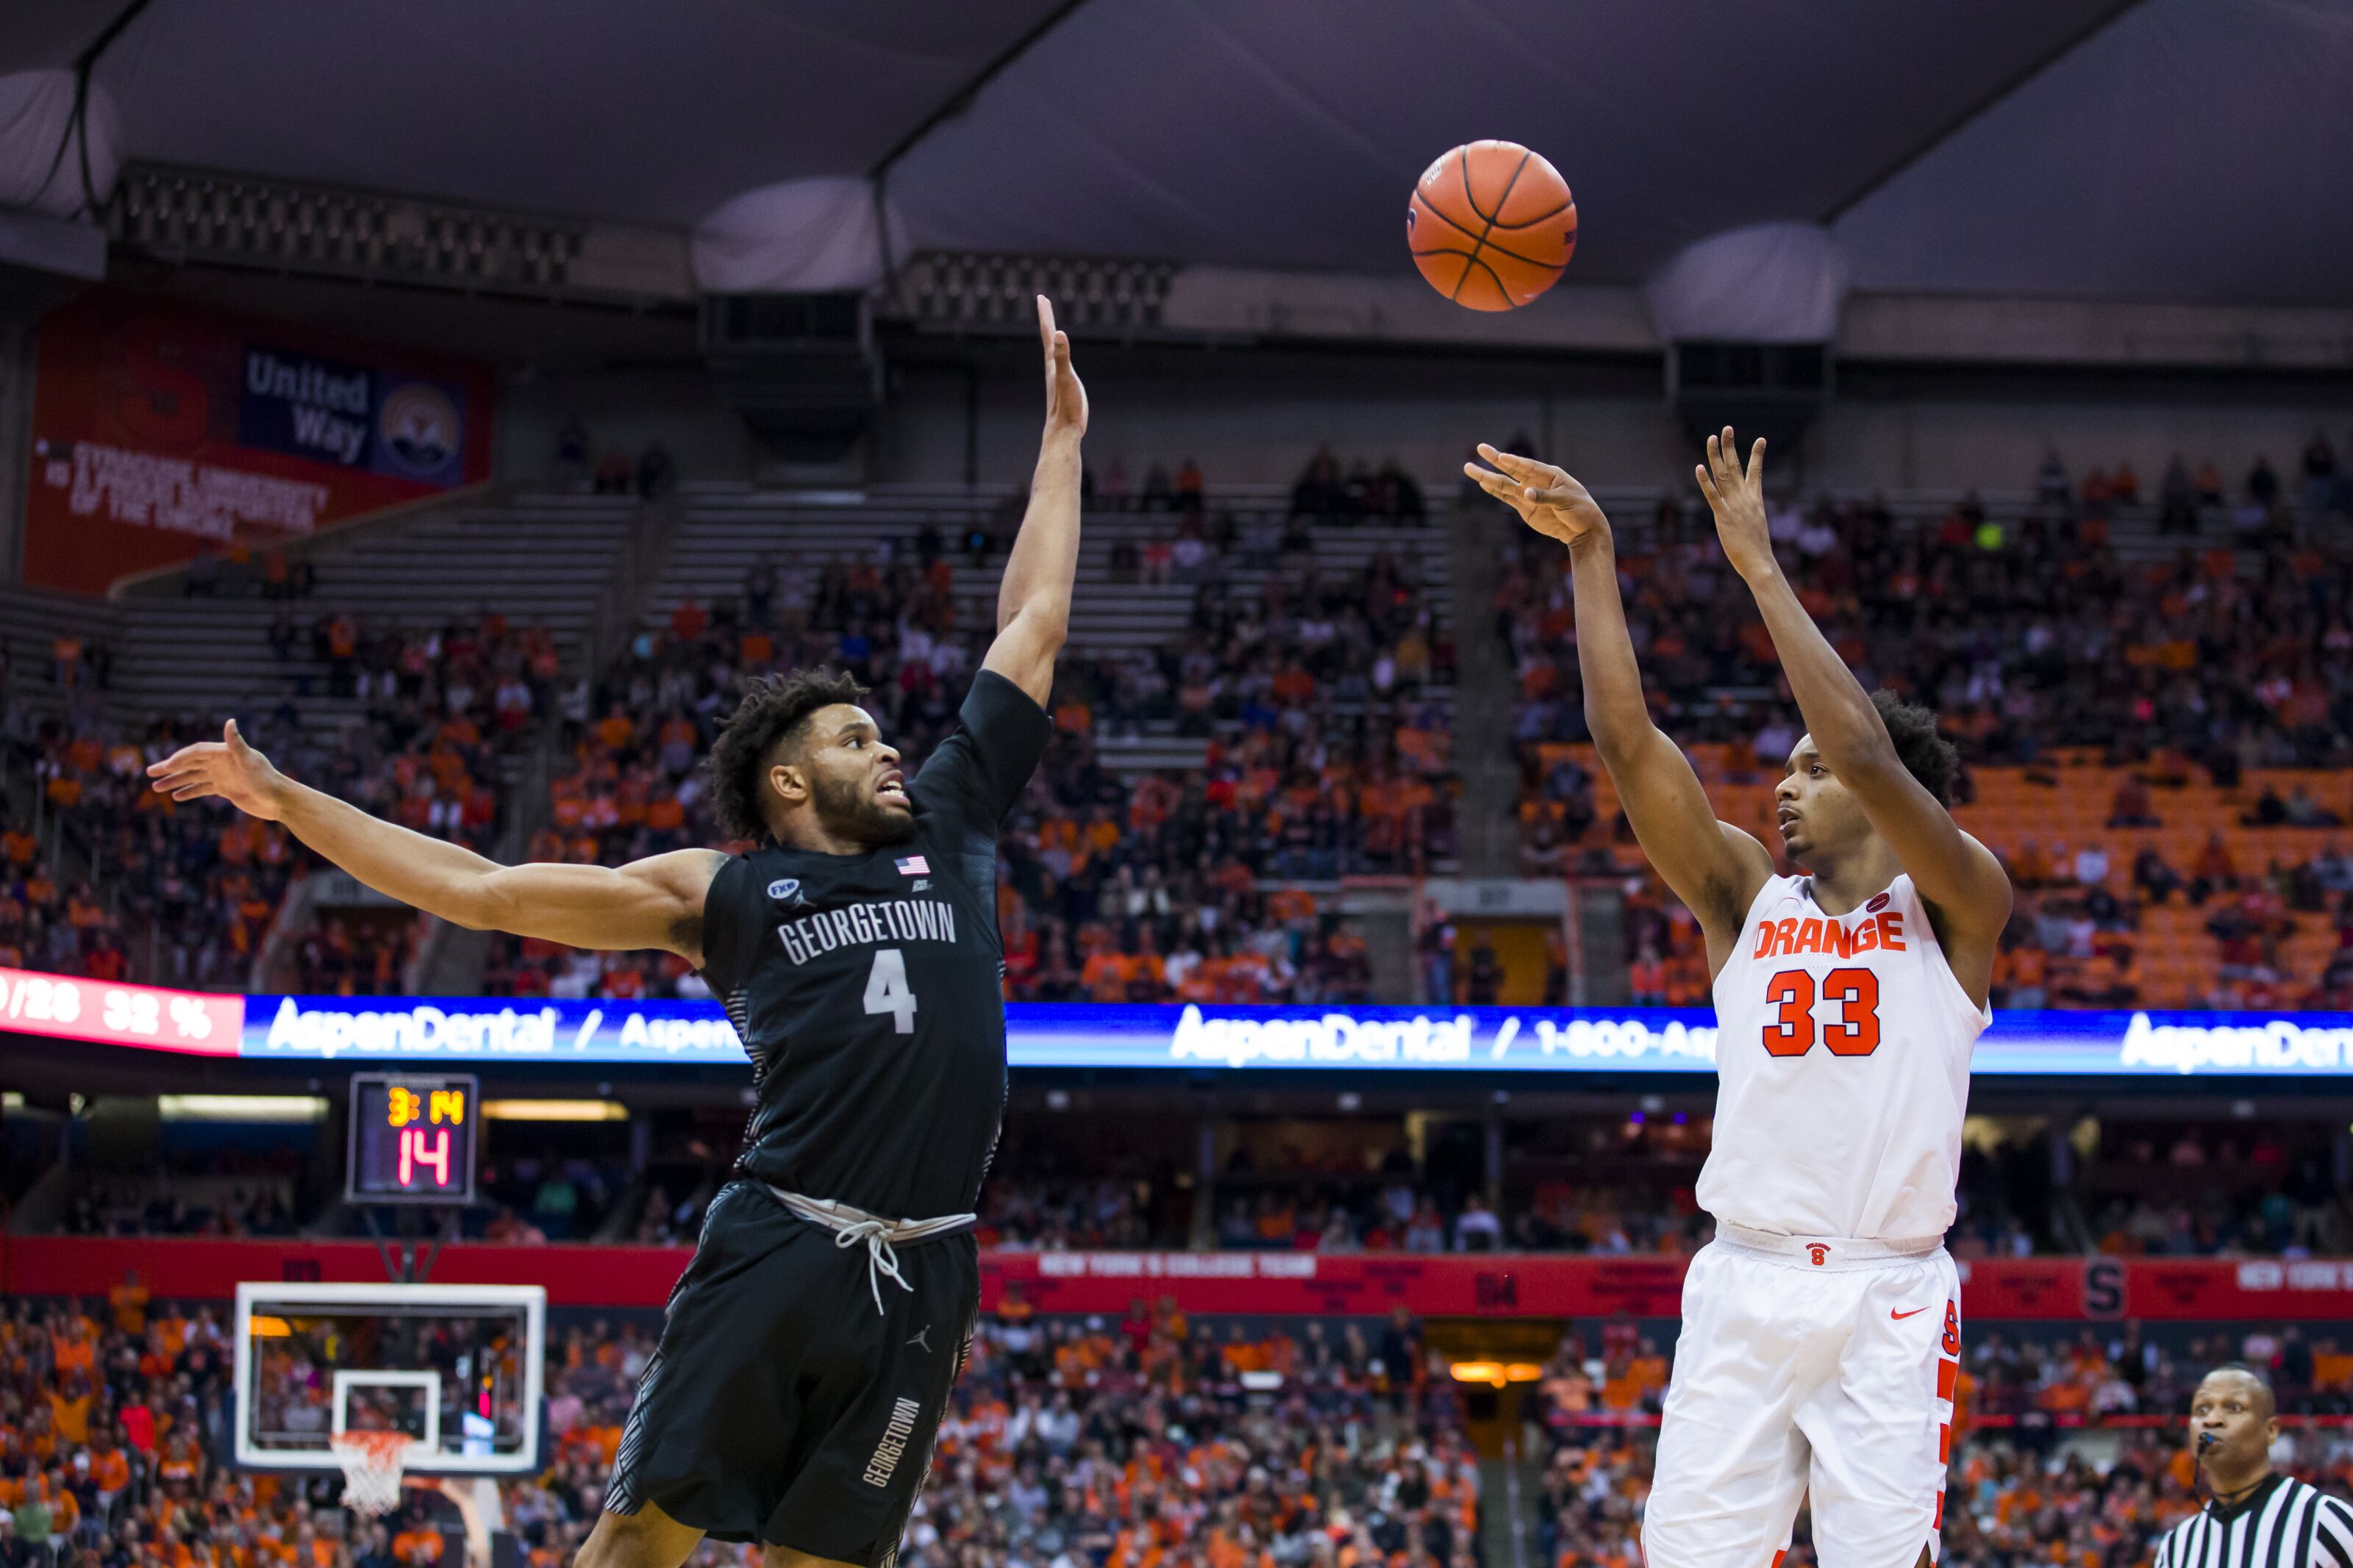 Syracuse Basketball: Game time, TV, Radio and more vs Georgetown